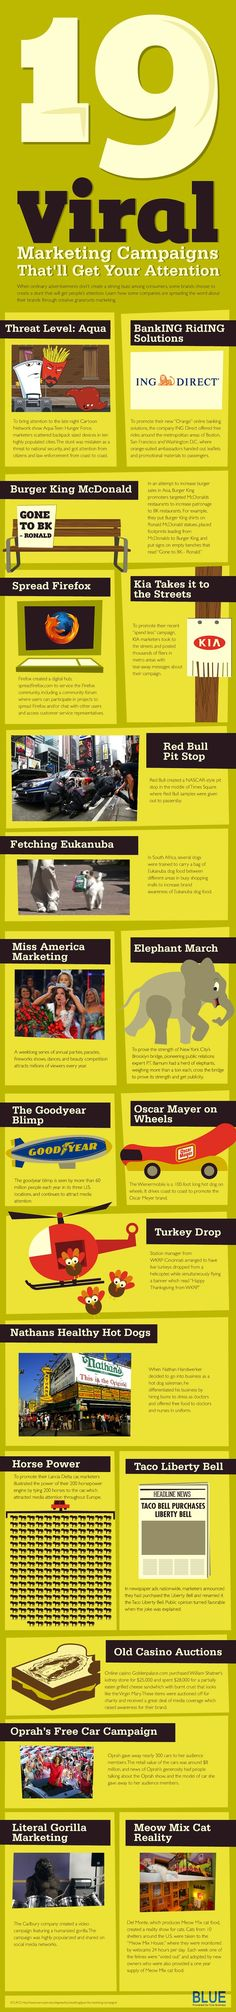 19 Viral Marketing Campaigns #infographic